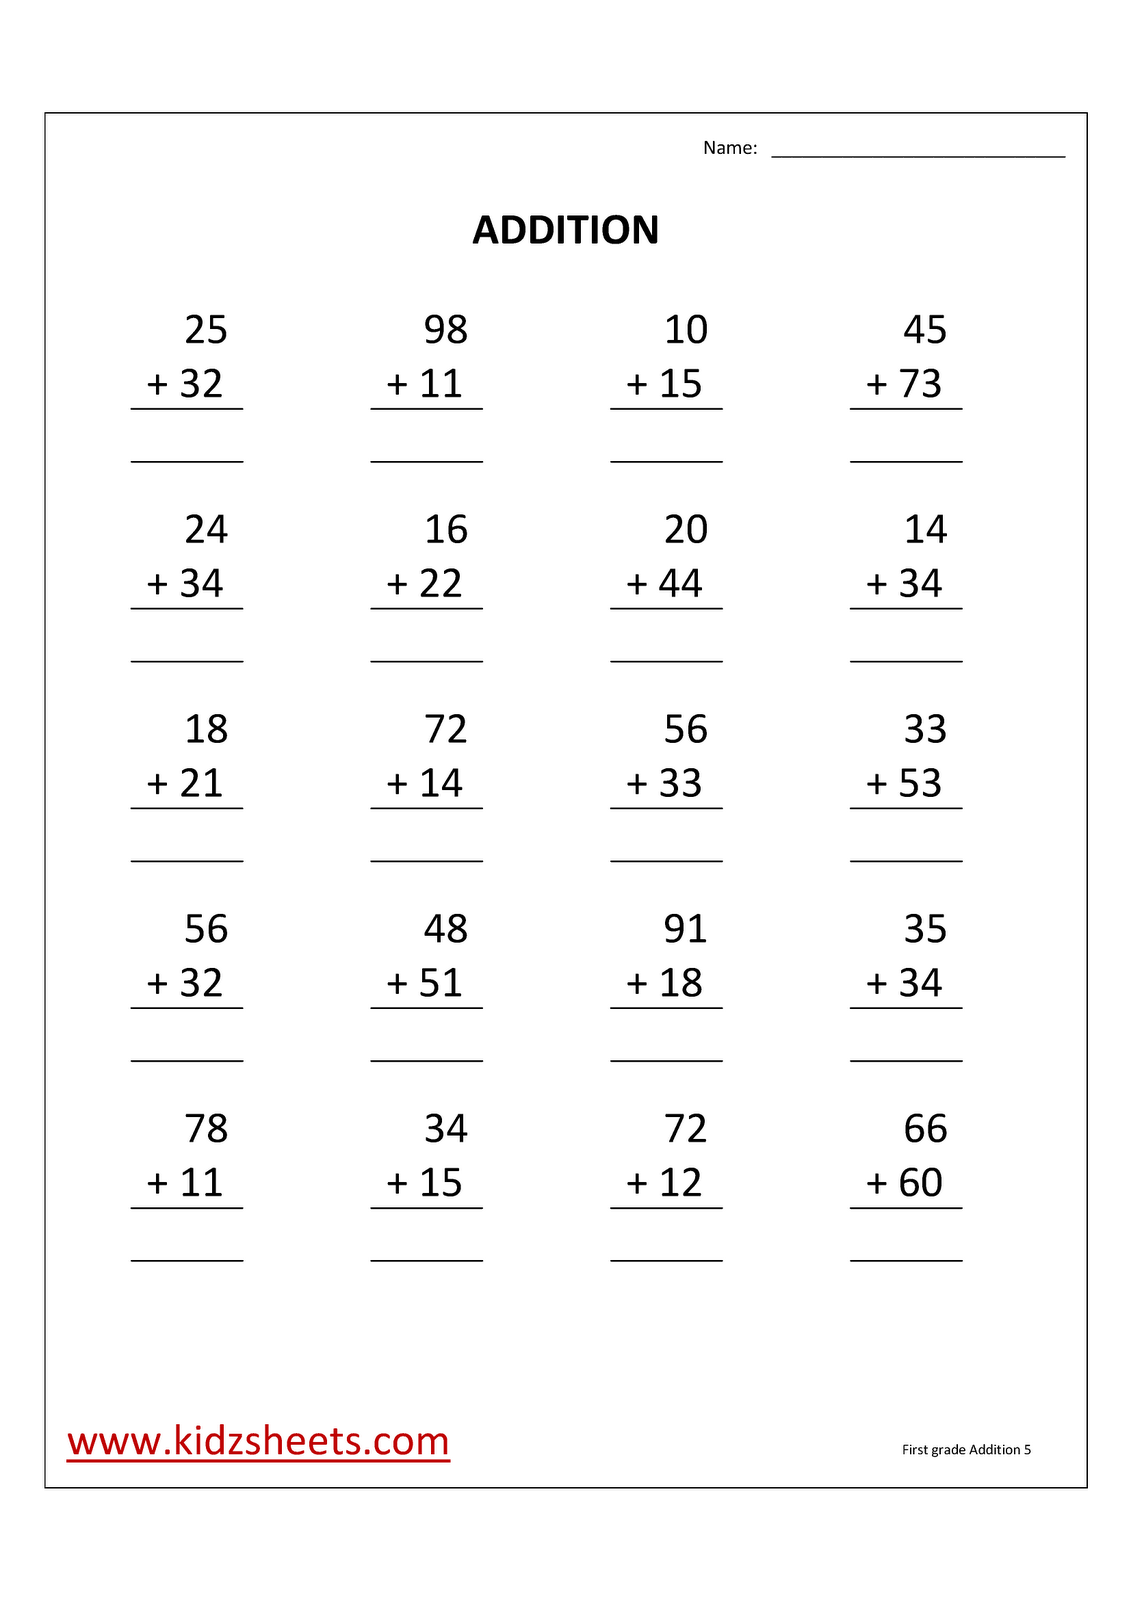 Worksheet 612792 Addition Worksheets Year 5 Addition – Grade 5 Addition and Subtraction Worksheets